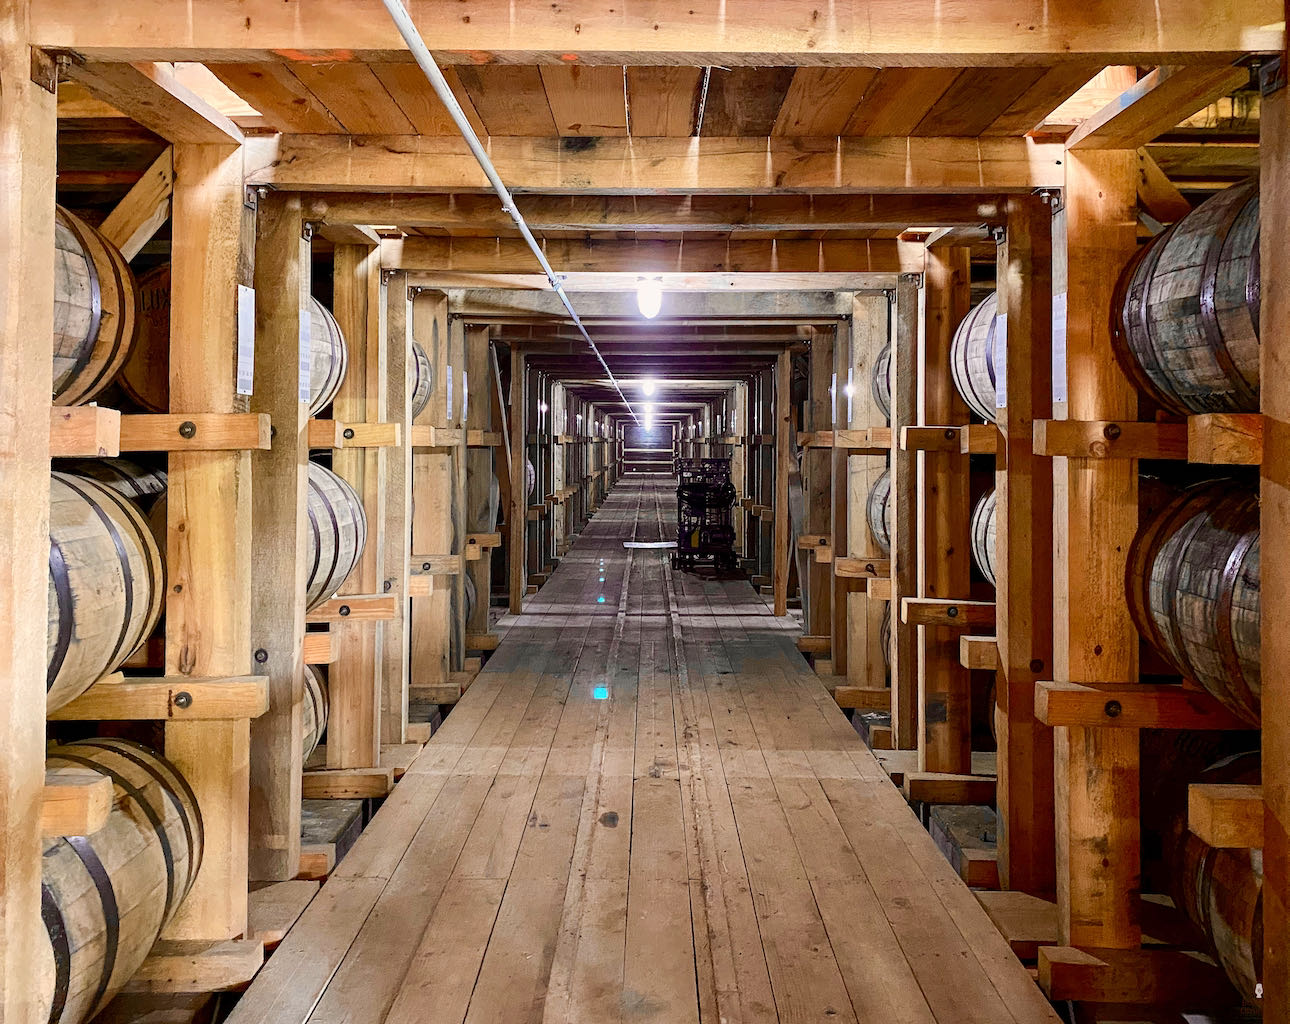 Ricks in Warehouse - Lux Row Distillers